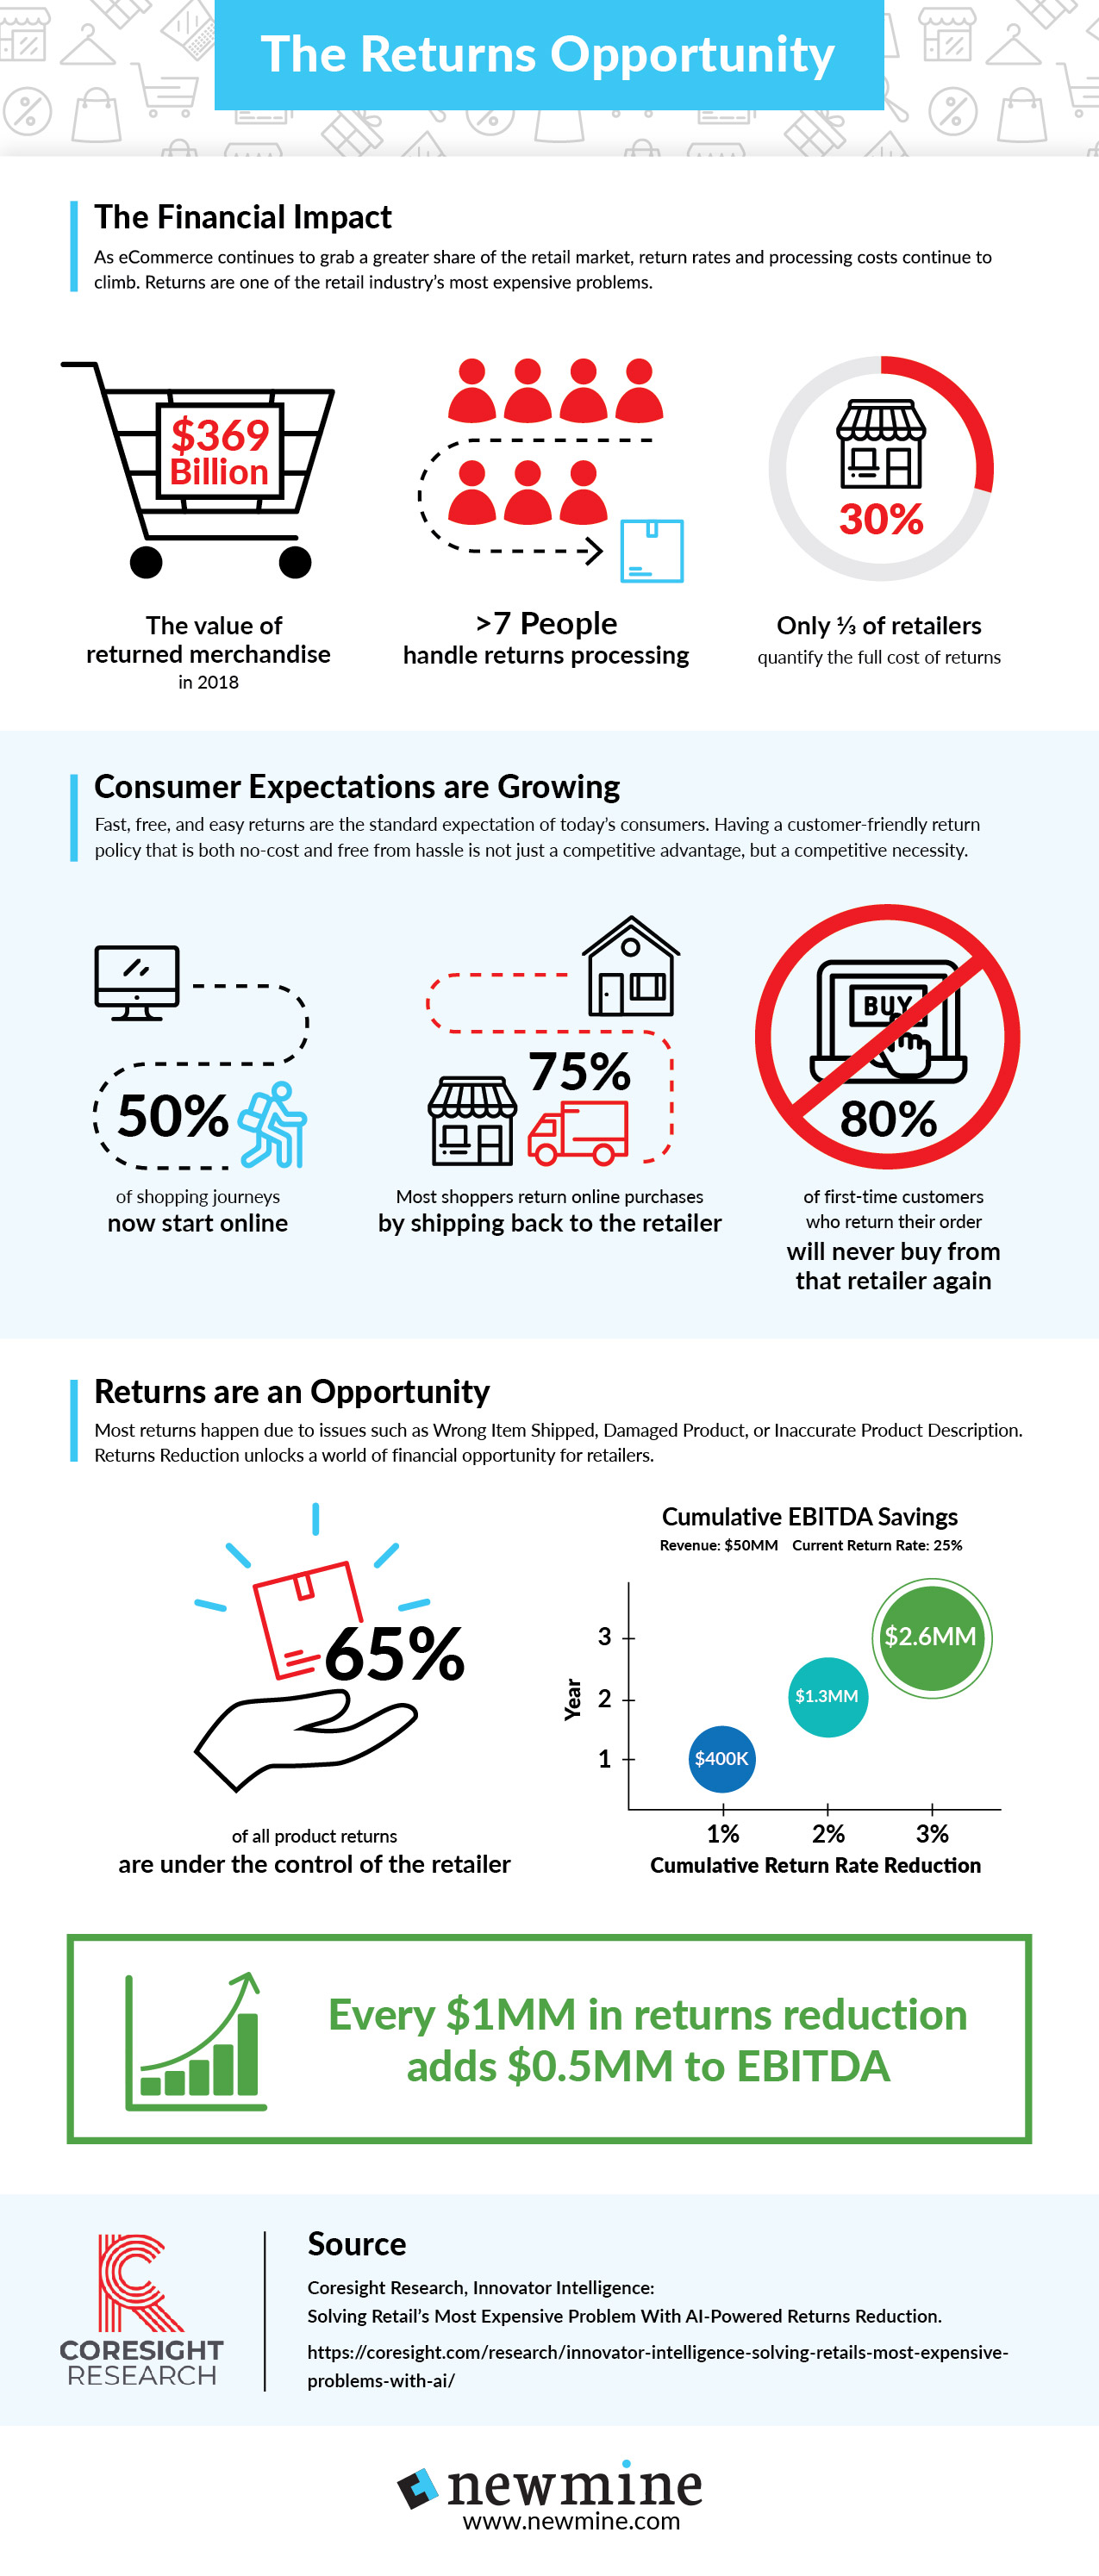 Newmine's Returns Opportunity infographic